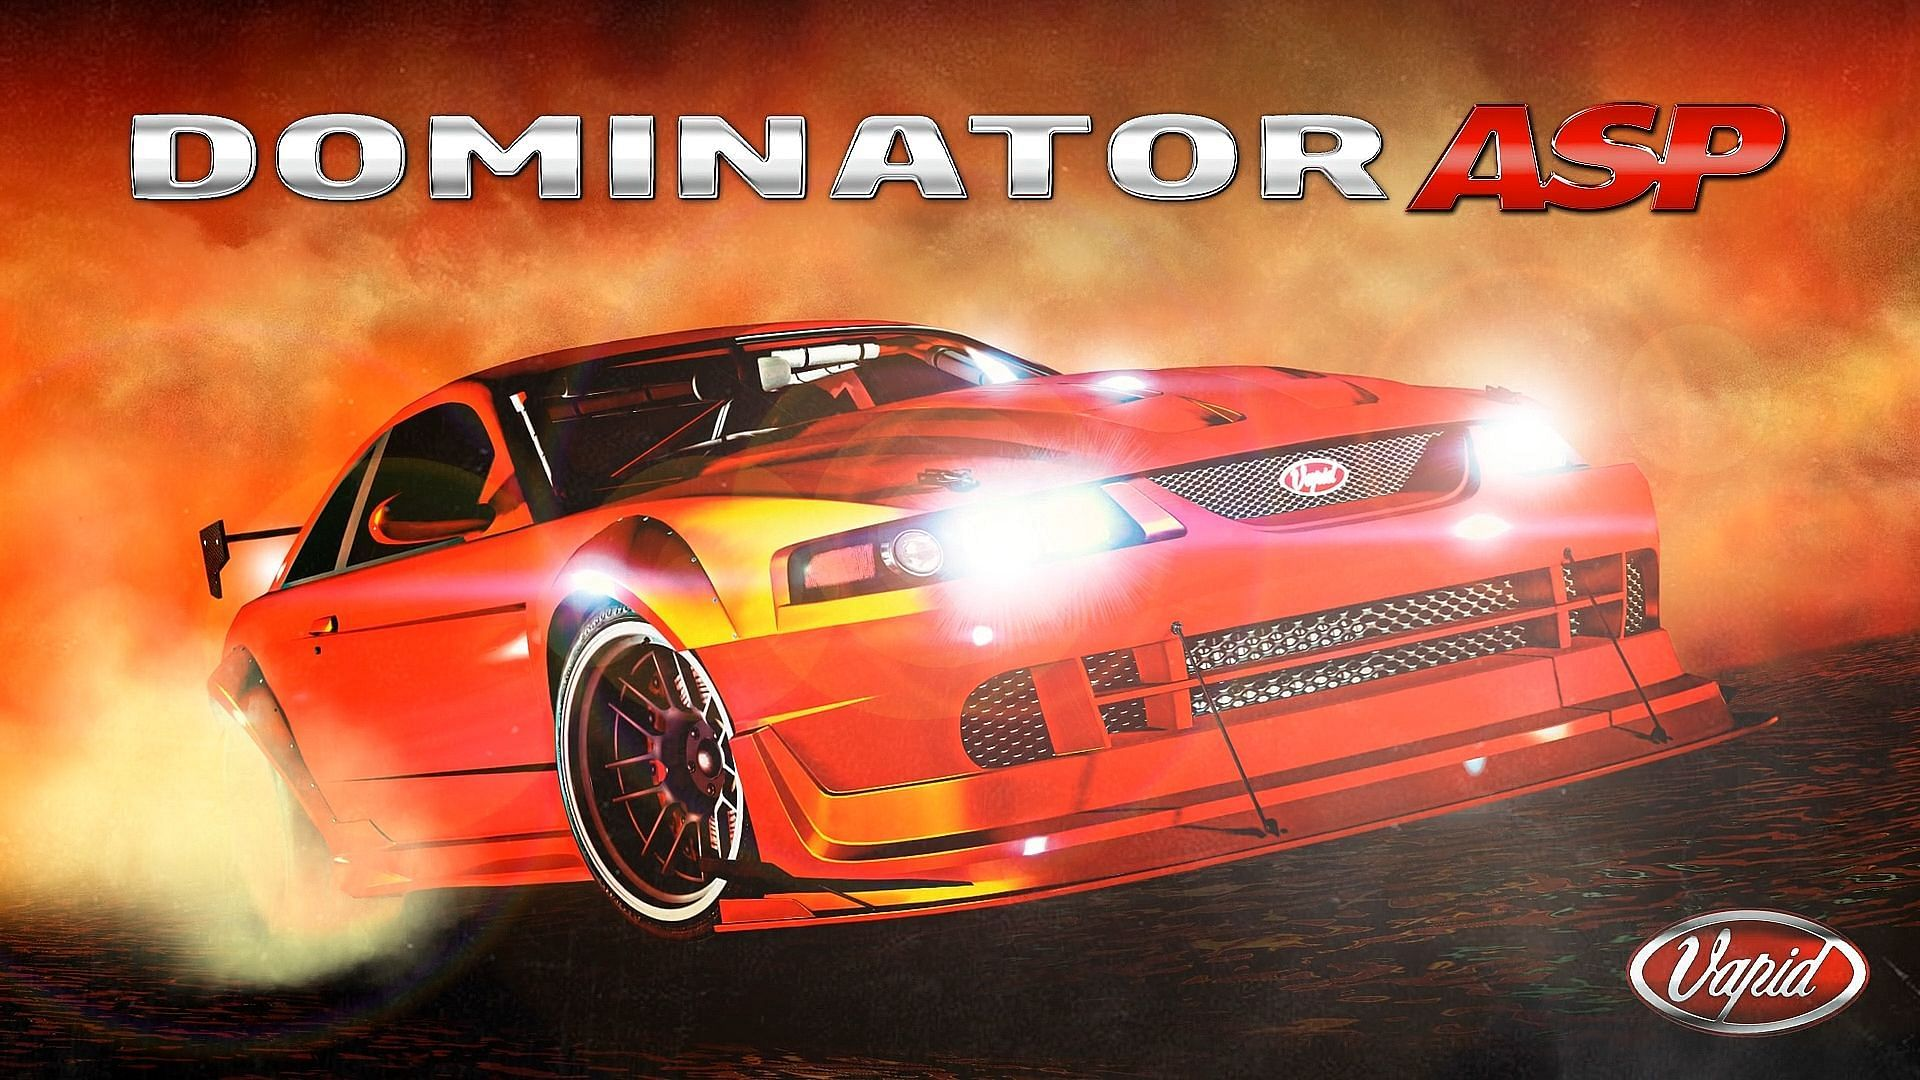 GTA Online weekly update 10/14/21: Dominator ASP Prize Ride, 2x payout on special vehicle work, and more